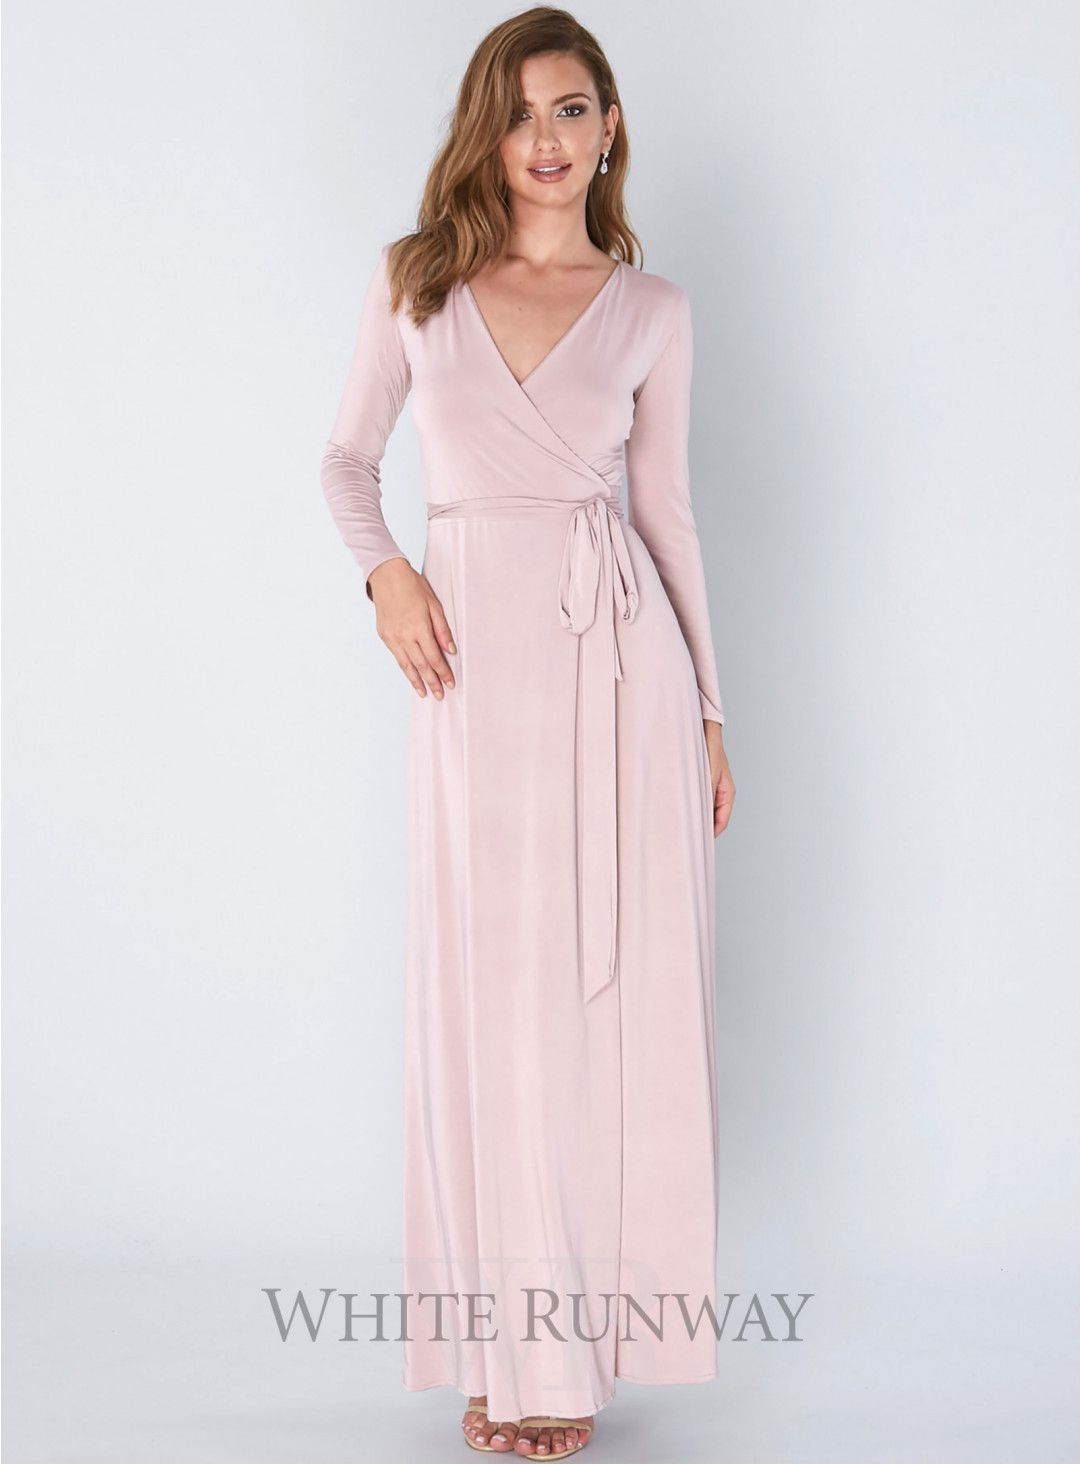 Persia Dress A beautiful full length dress by Pia Gladys Perey A